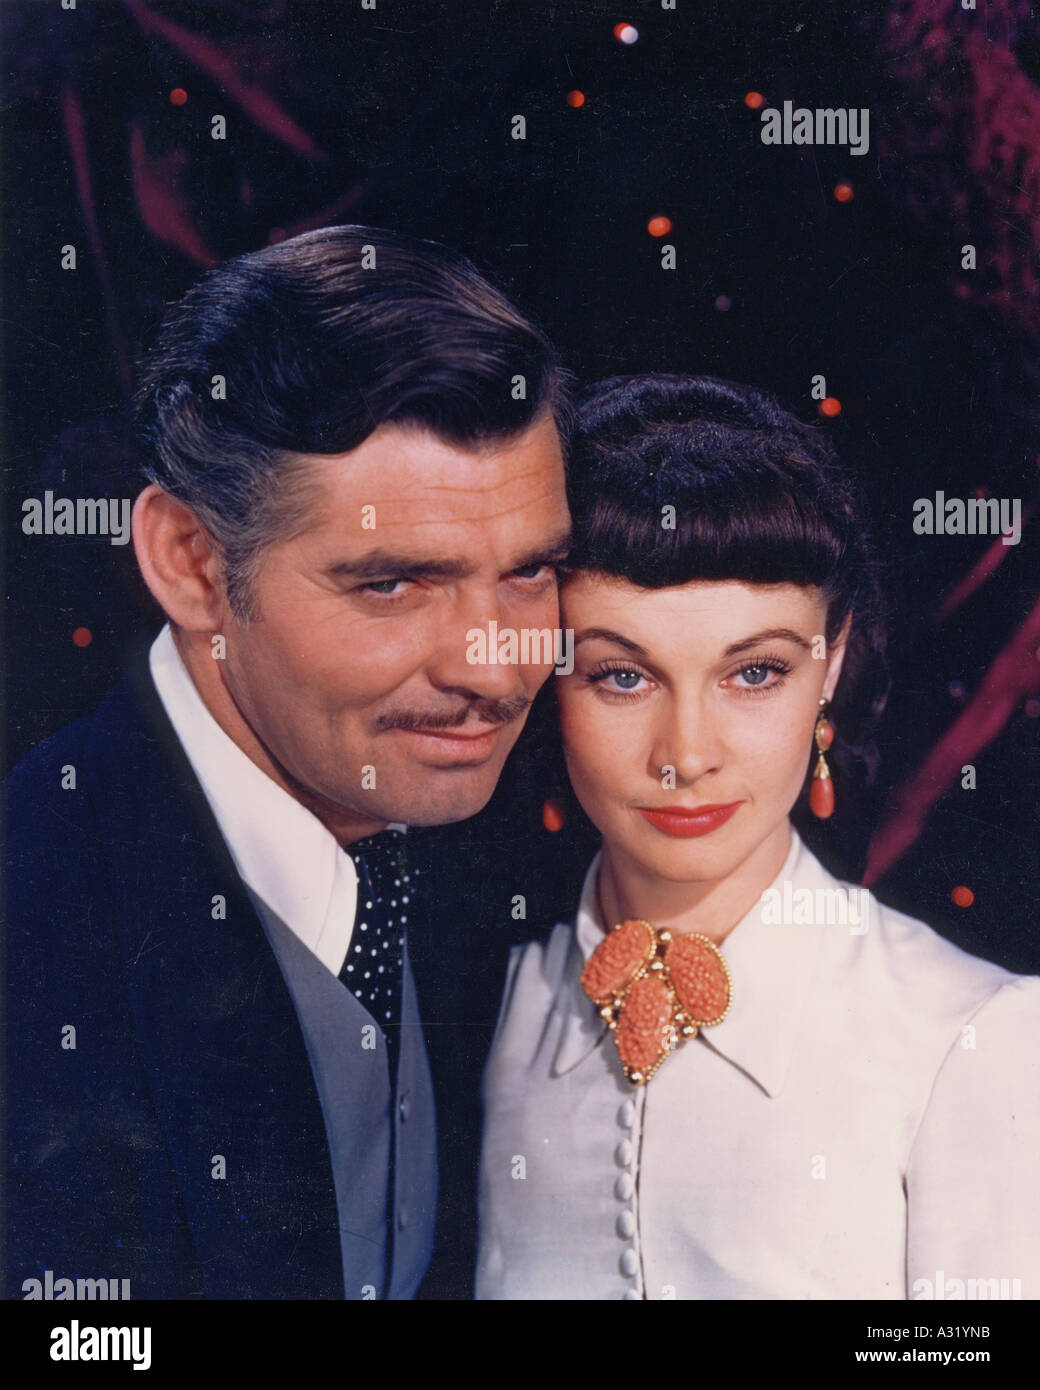 GONE WITH THE WIND Clark Gable and Vivien Leigh in the 1939 MGM film classic - Stock Image